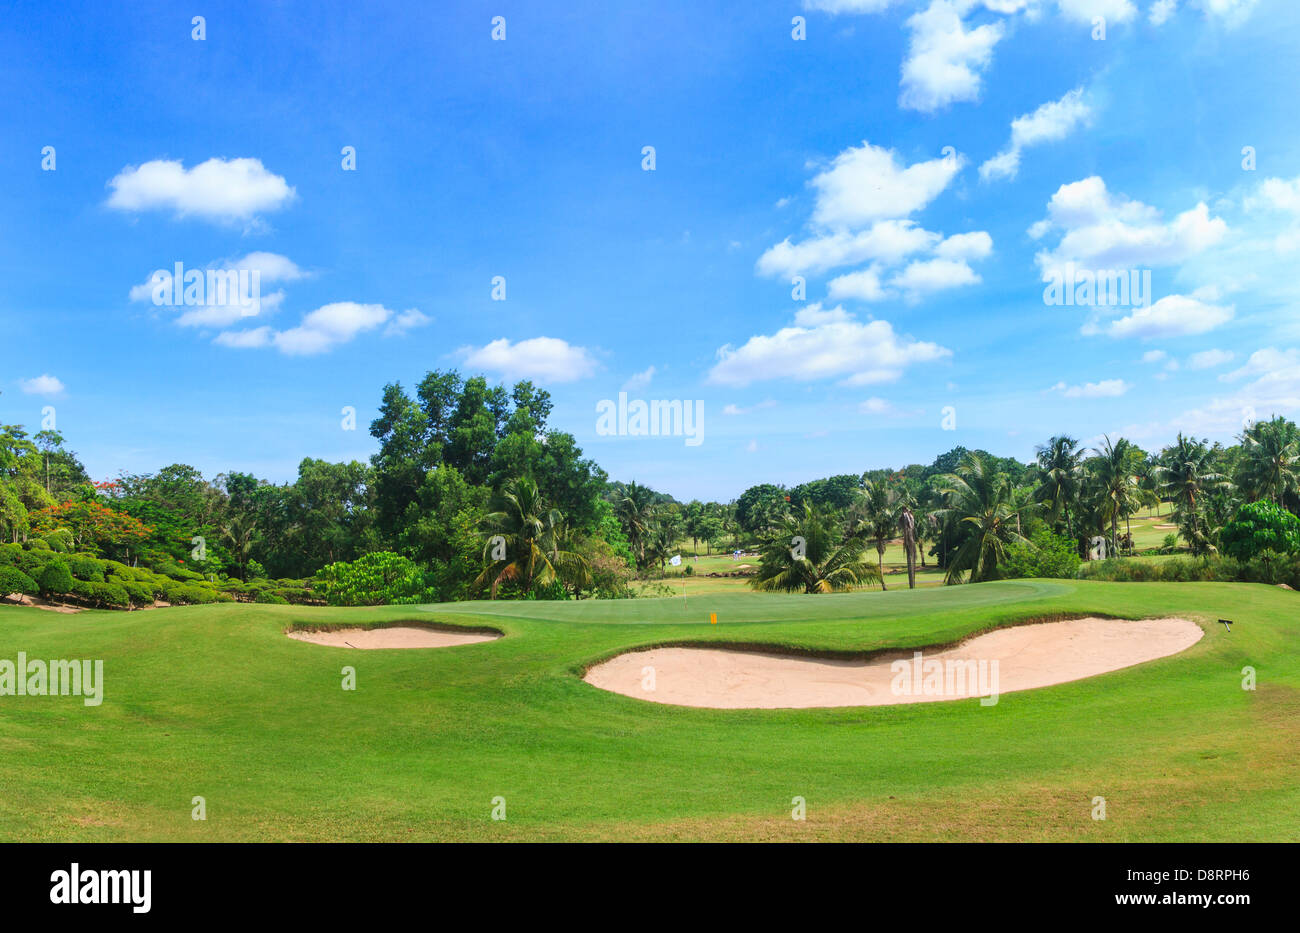 8th hole at Green Valley/St Andrews golf course near Pattaya, Thailand - Stock Image